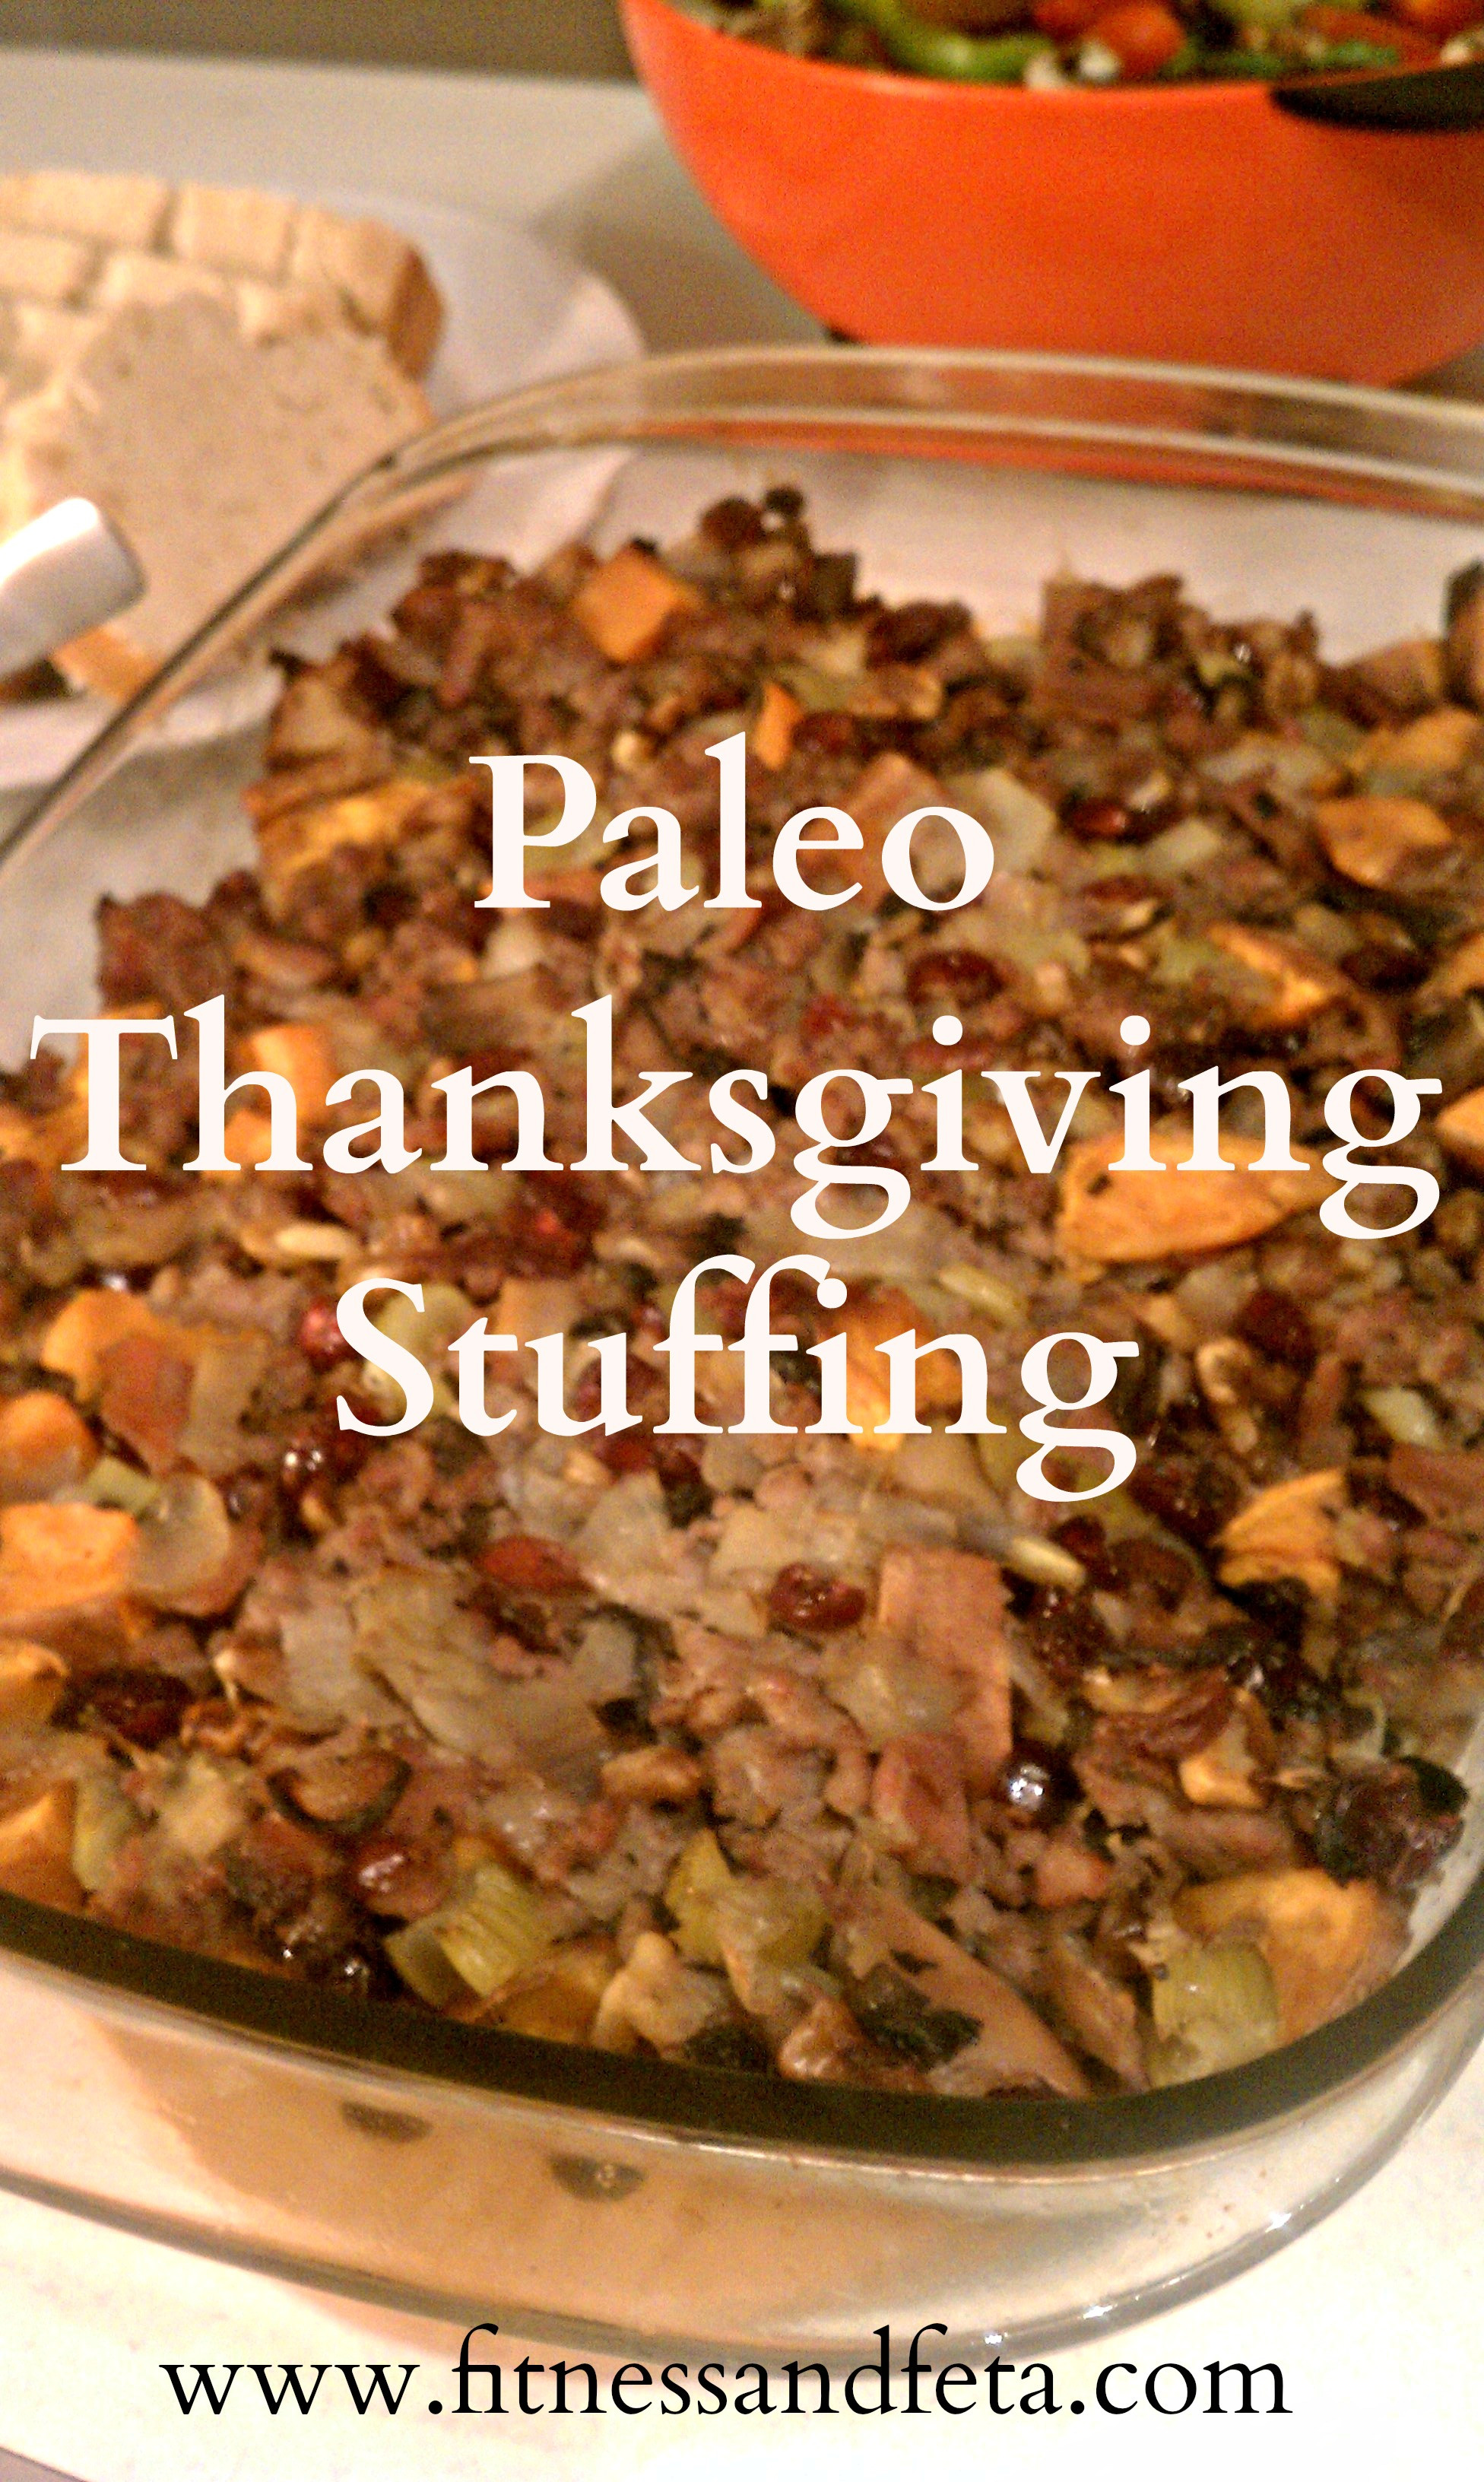 Paleo Thanksgiving Stuffing  Paleo Thanksgiving Stuffing